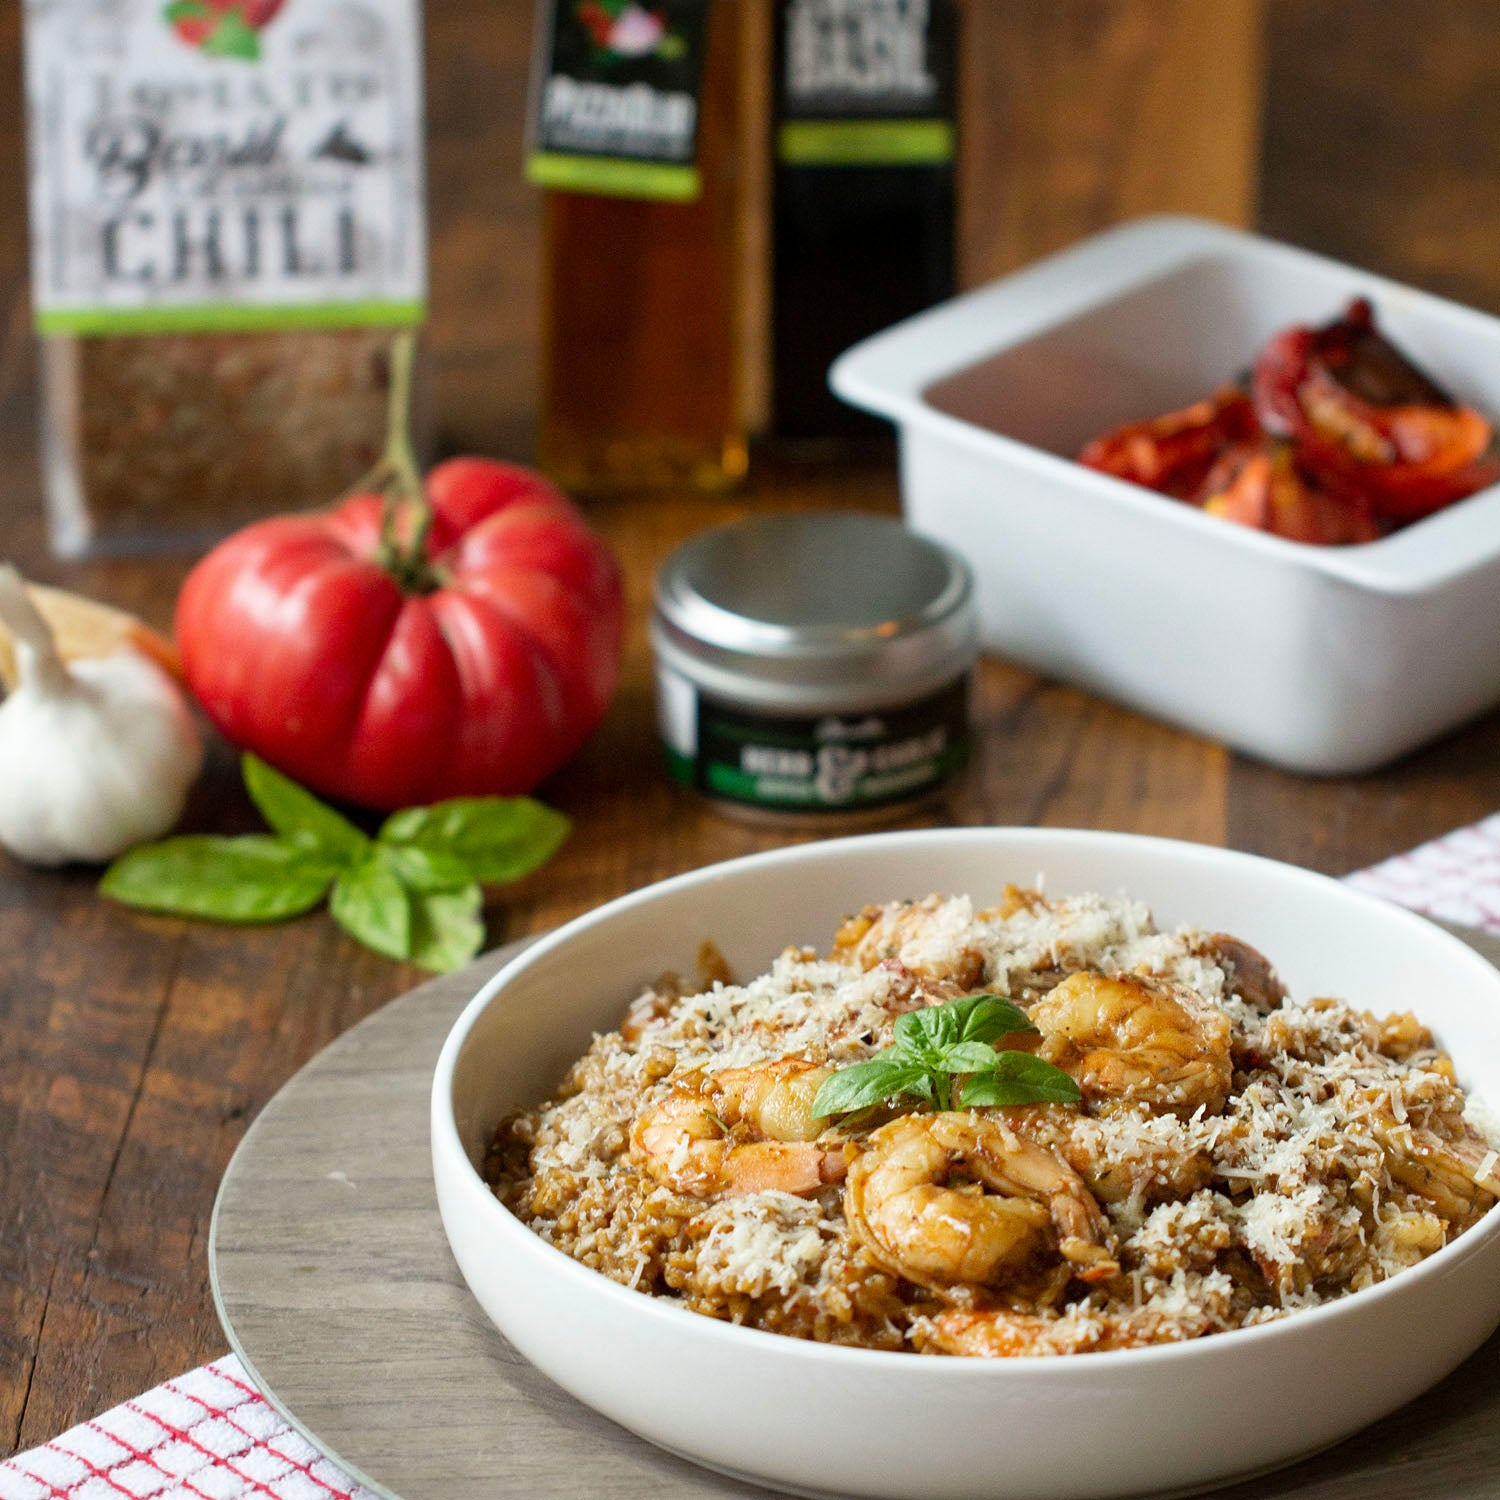 Tomato Basil and Calabrian Chili Risotto with Shrimp